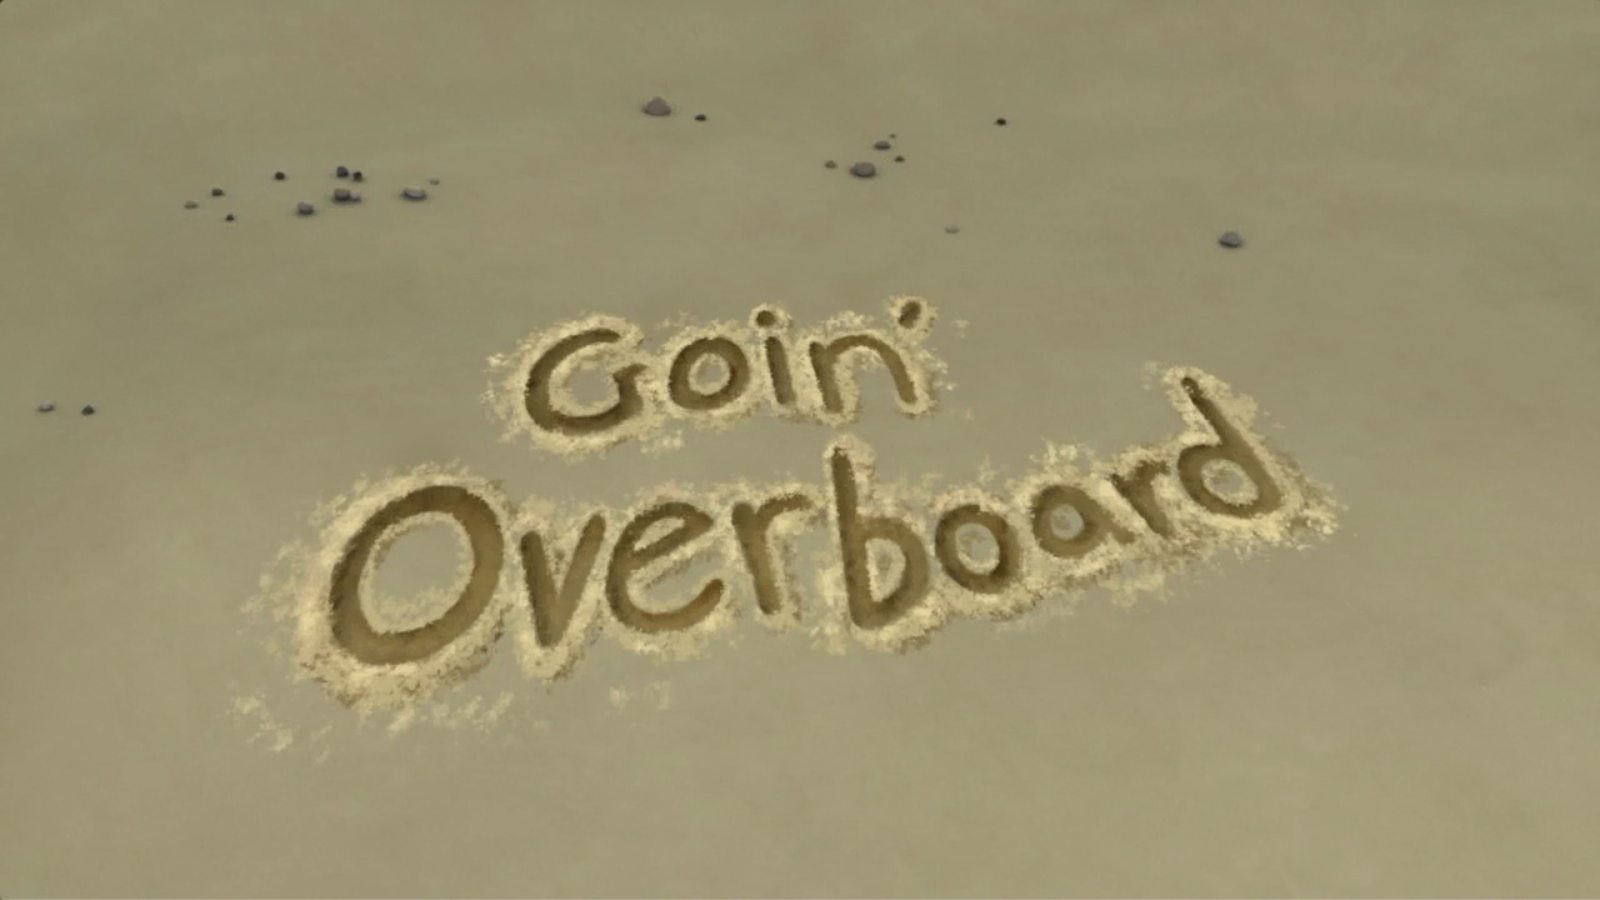 Goin' Overboard